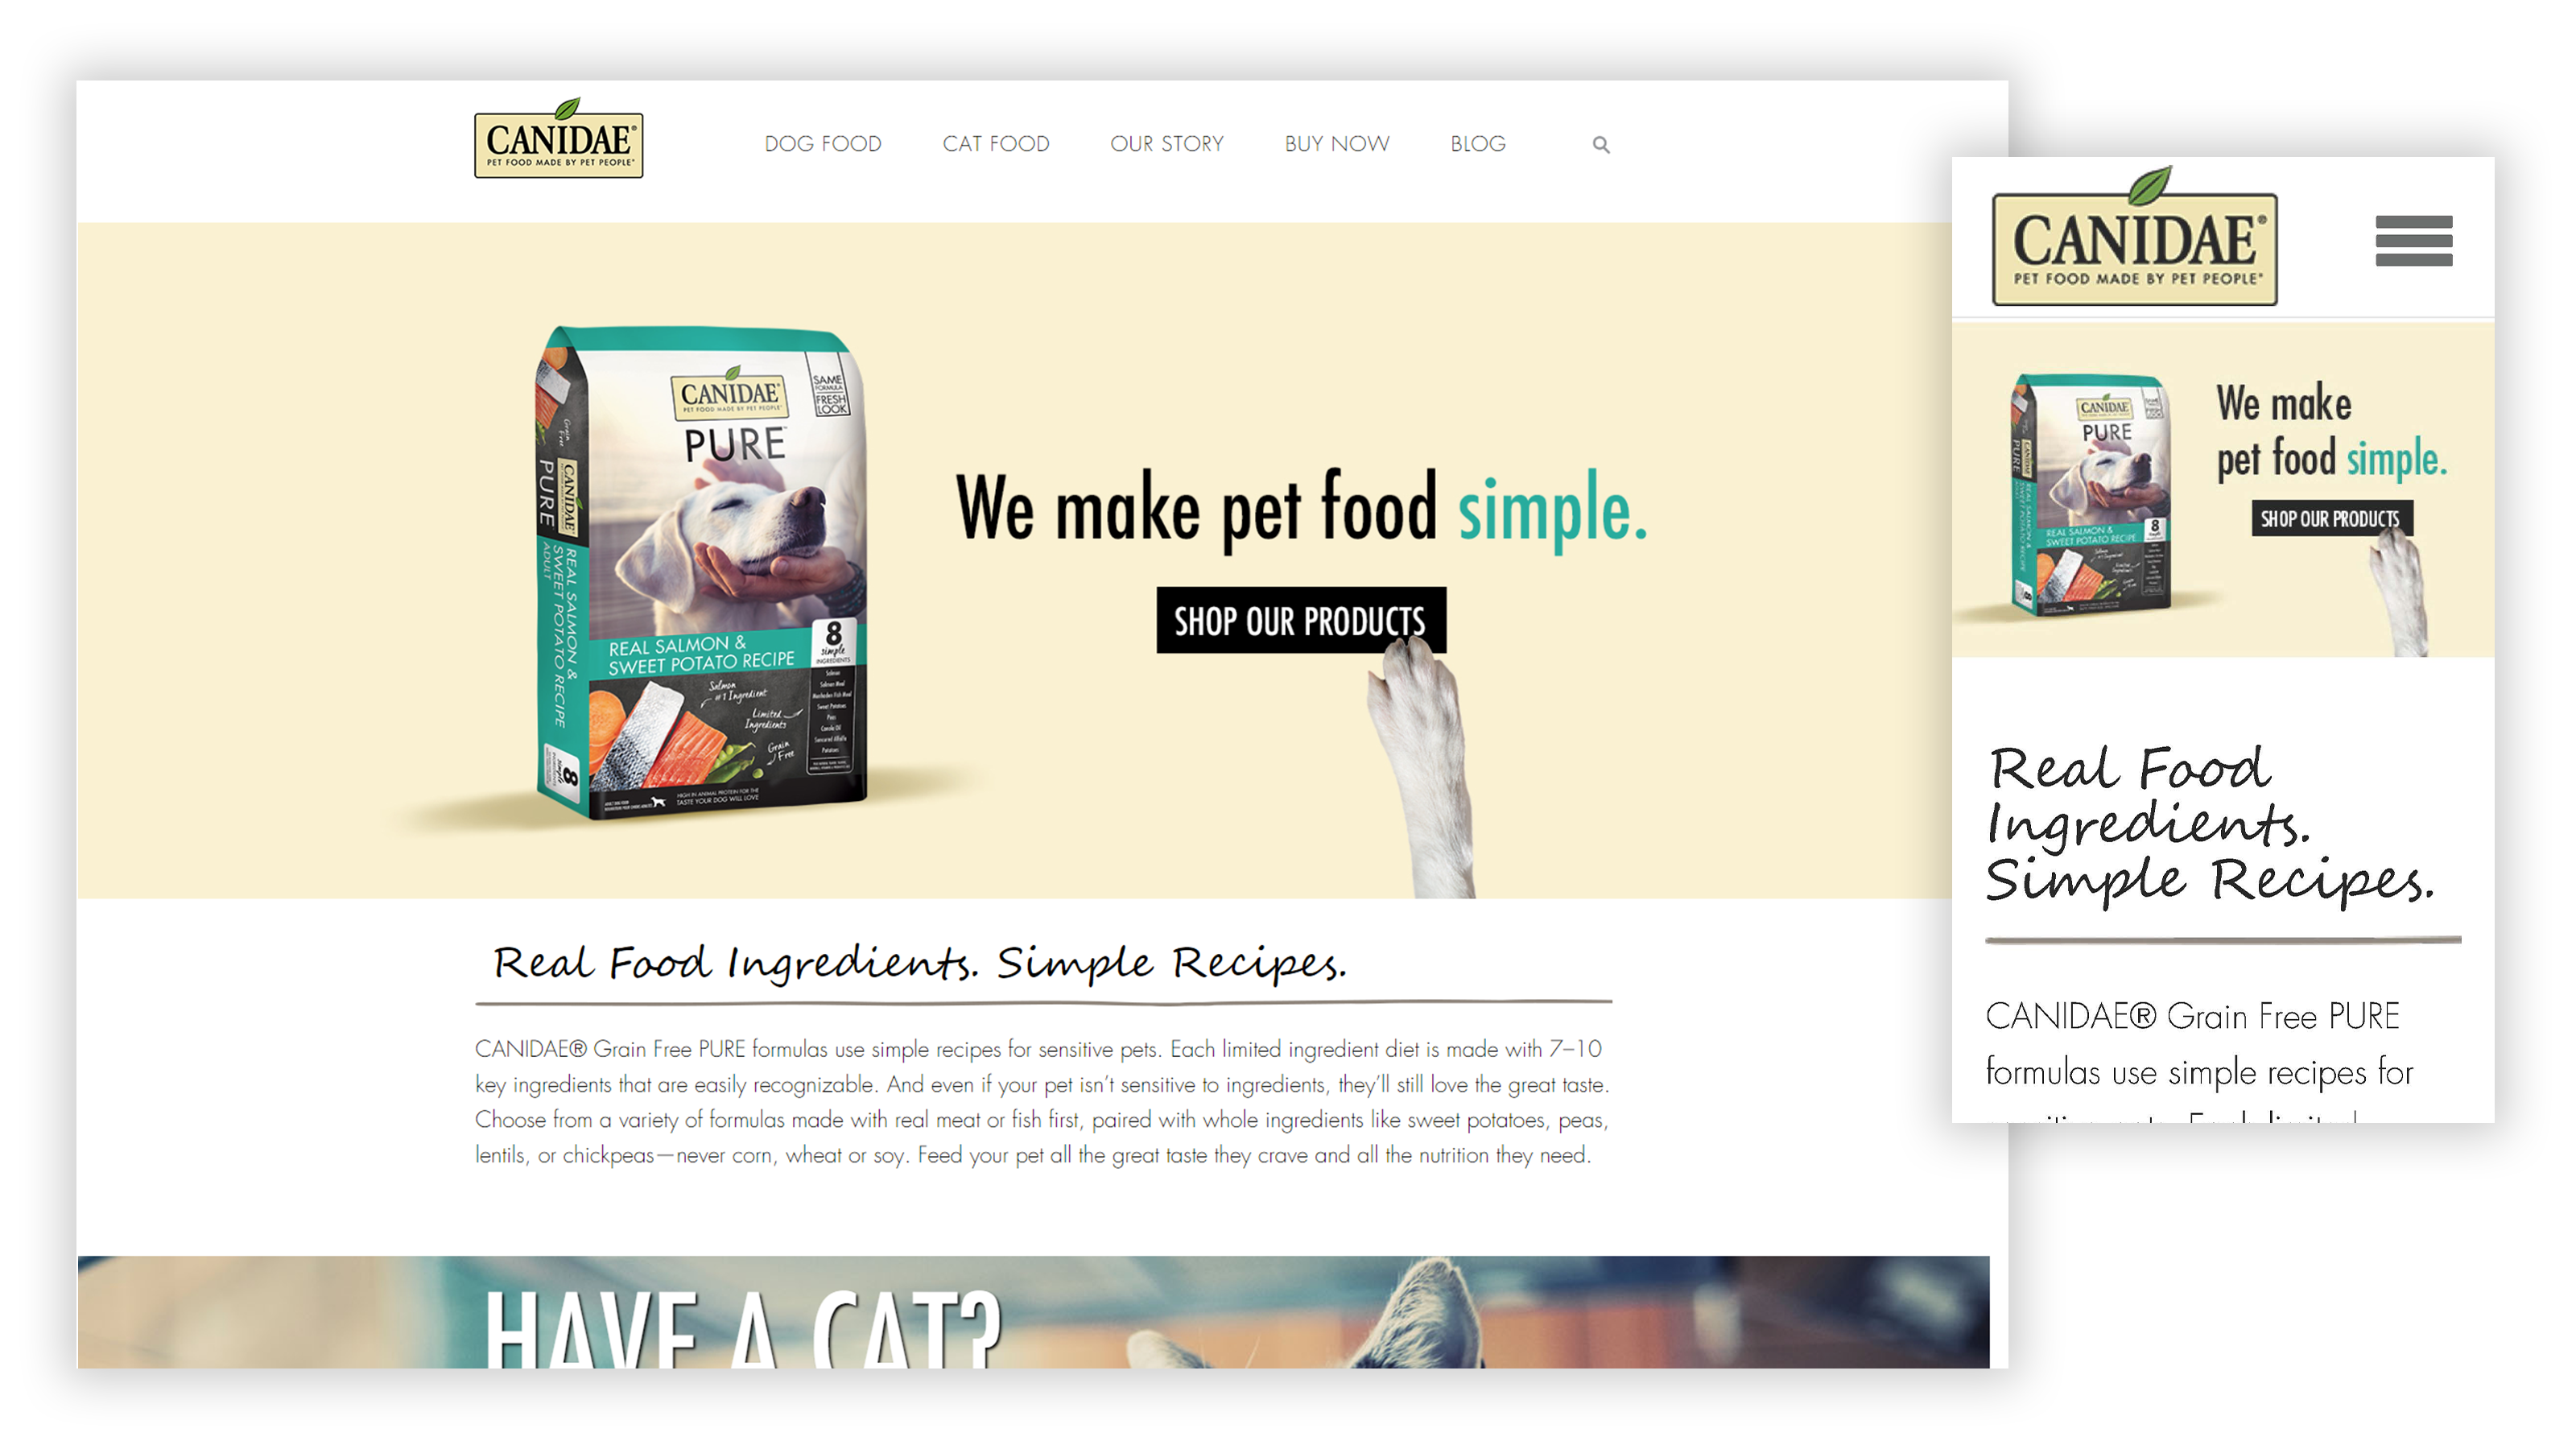 CANIDAE website Home Page on desktop and mobile